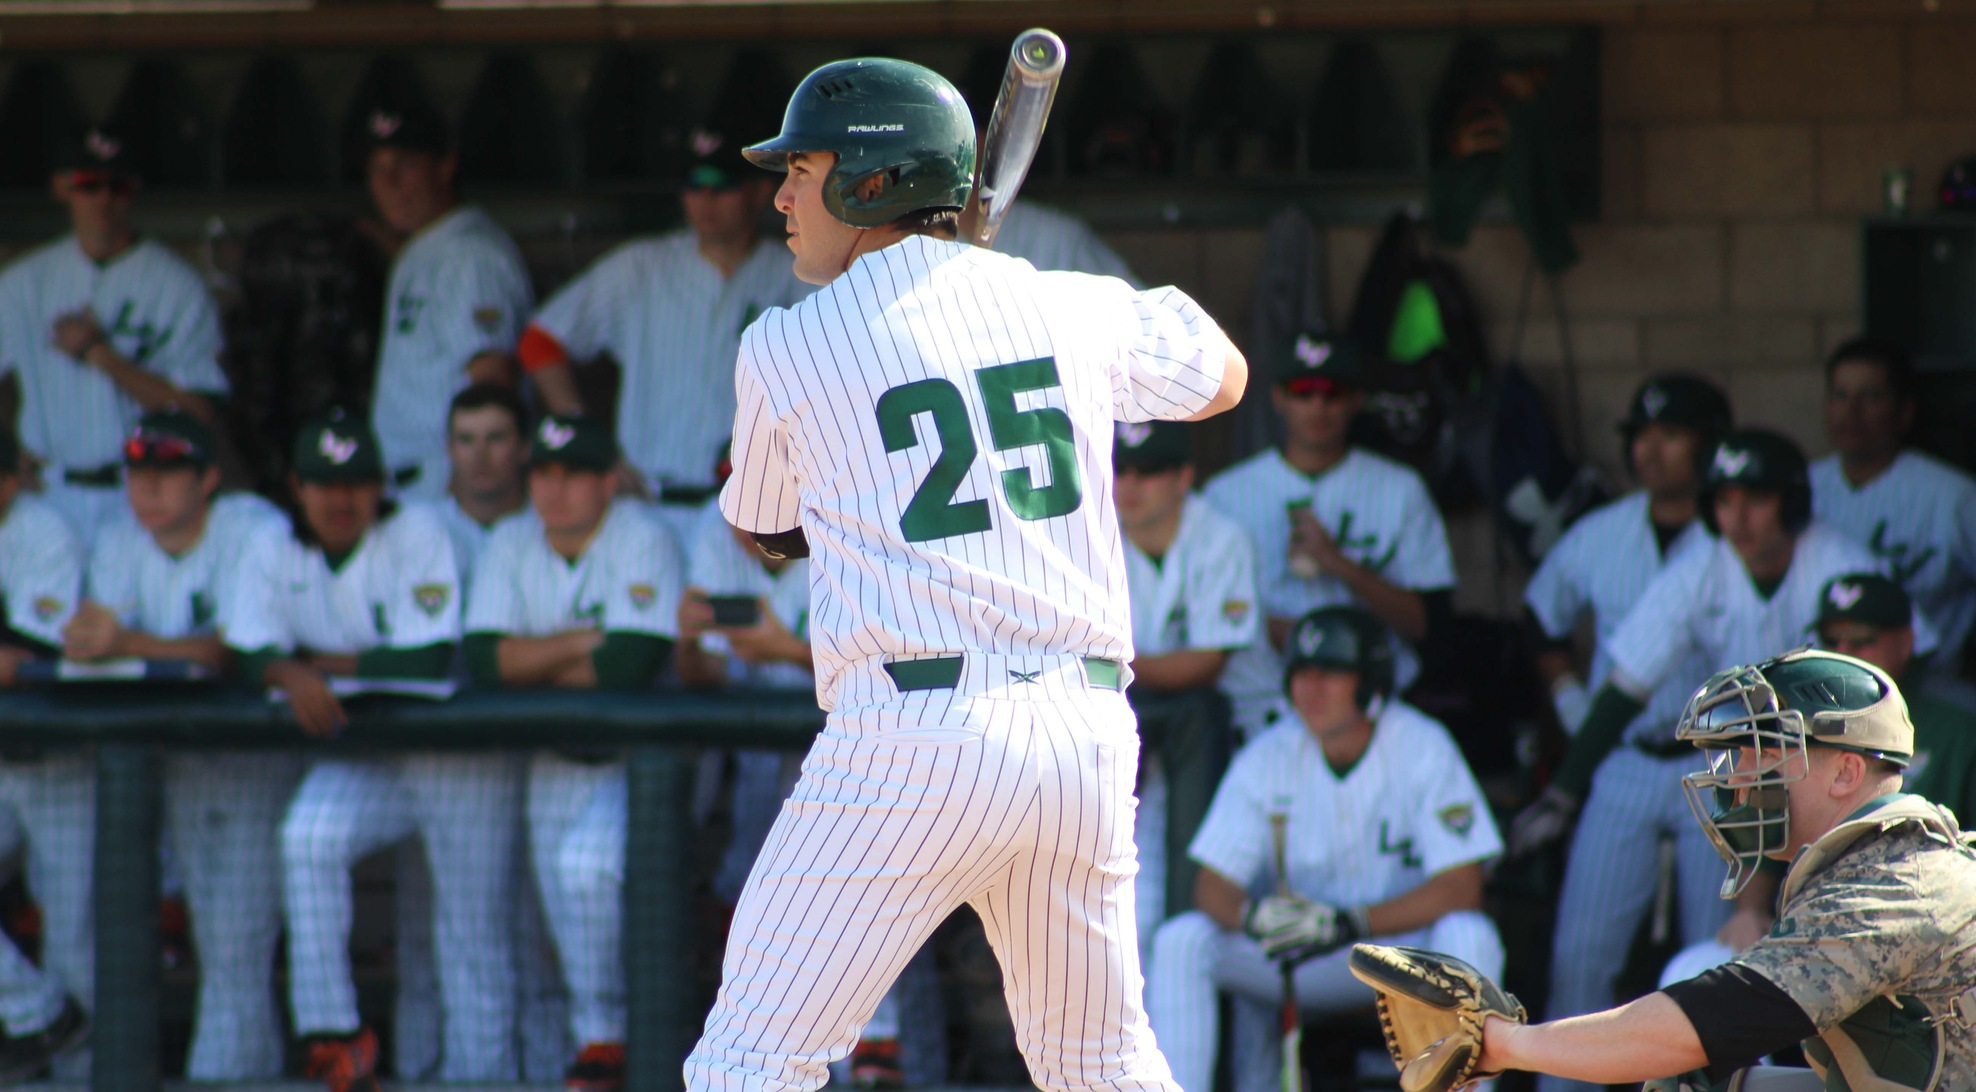 Baseball overcomes five-run deficit to beat Stags